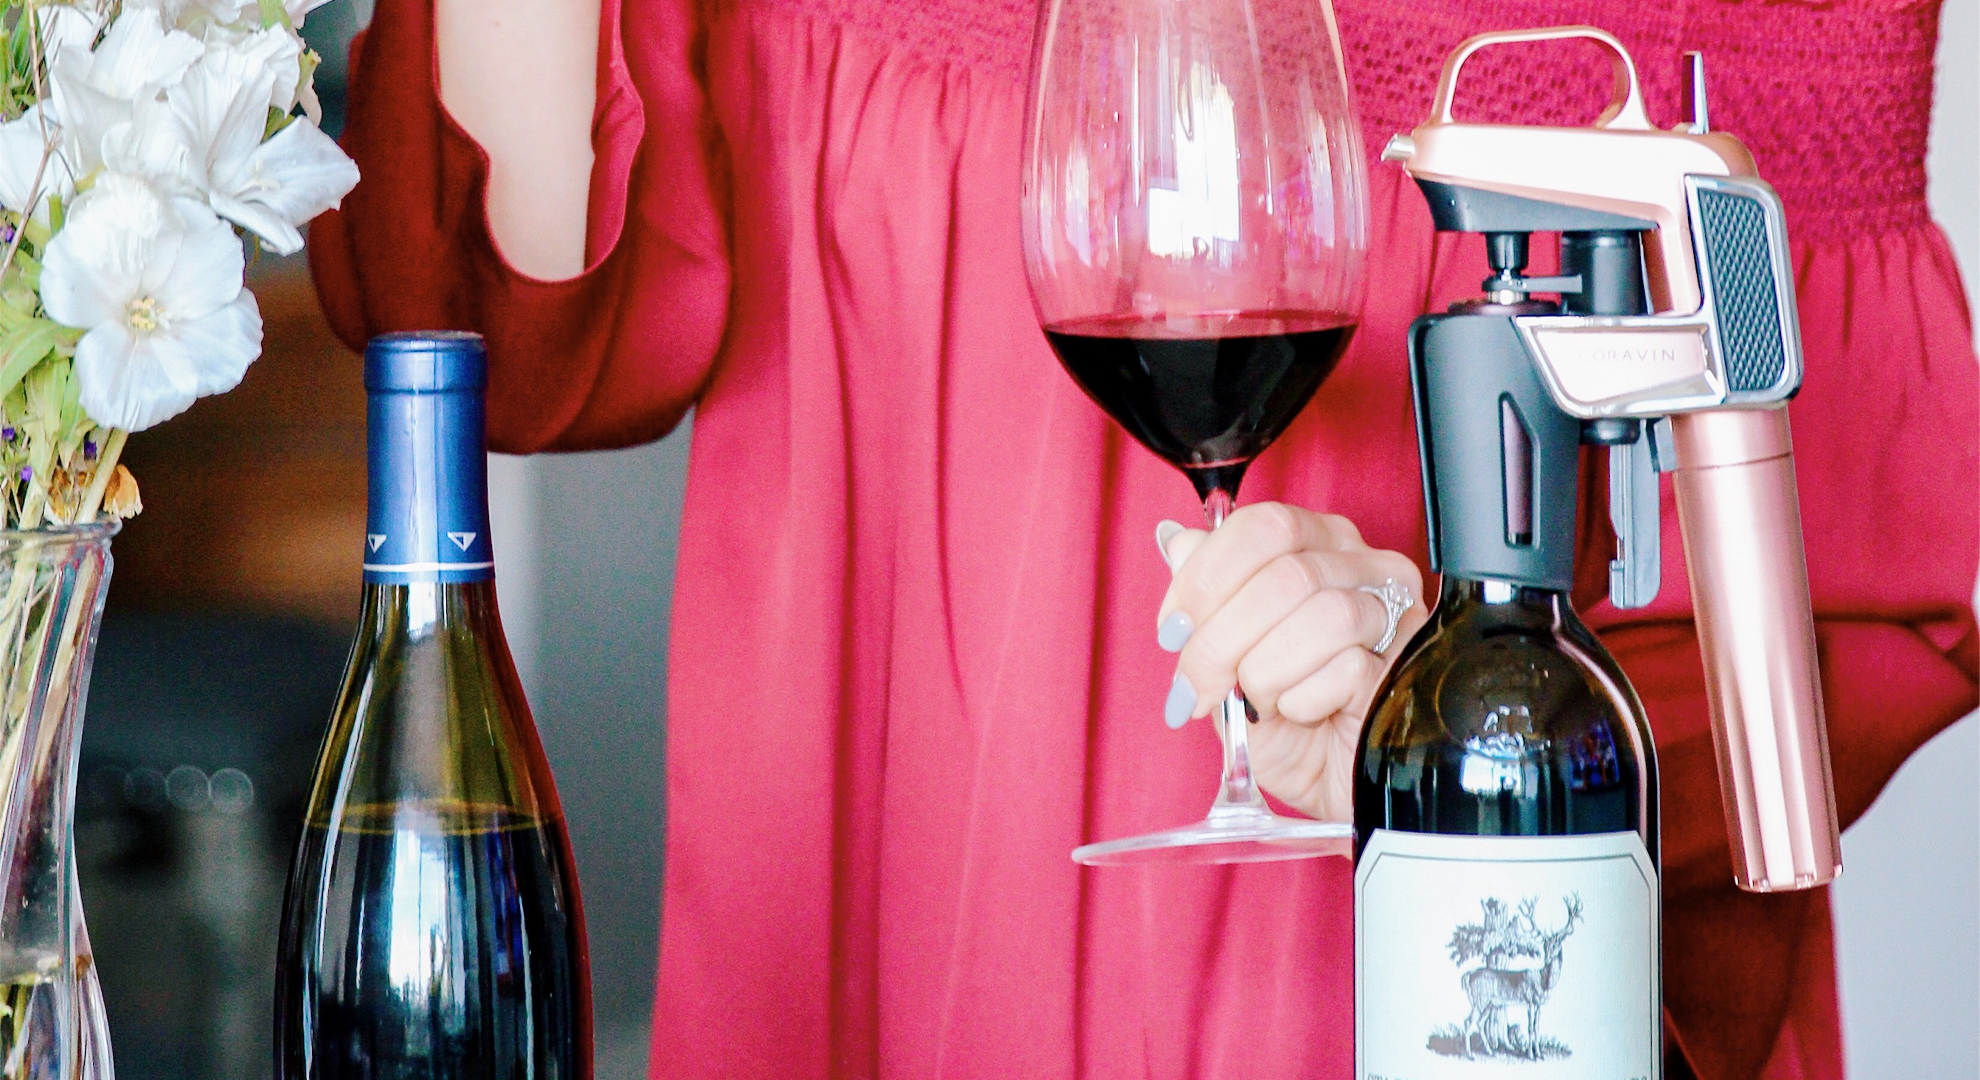 Woman holding a glass of red wine featuring a Coravin Wine Preservation System on bottle.